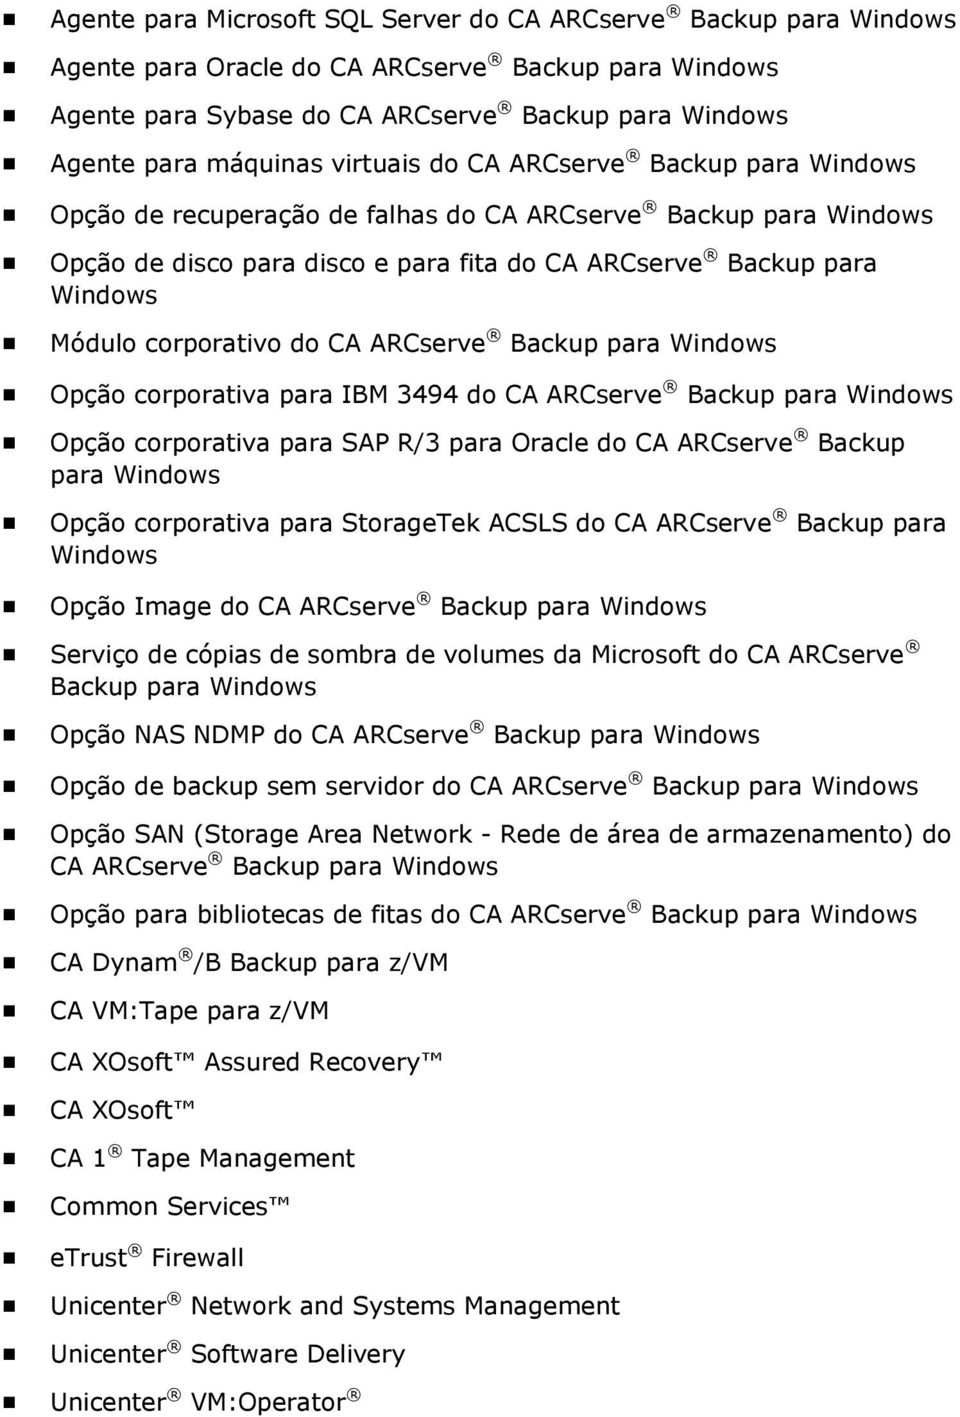 corporativo do CA ARCserve Backup para Windows Opção corporativa para IBM 3494 do CA ARCserve Backup para Windows Opção corporativa para SAP R/3 para Oracle do CA ARCserve Backup para Windows Opção